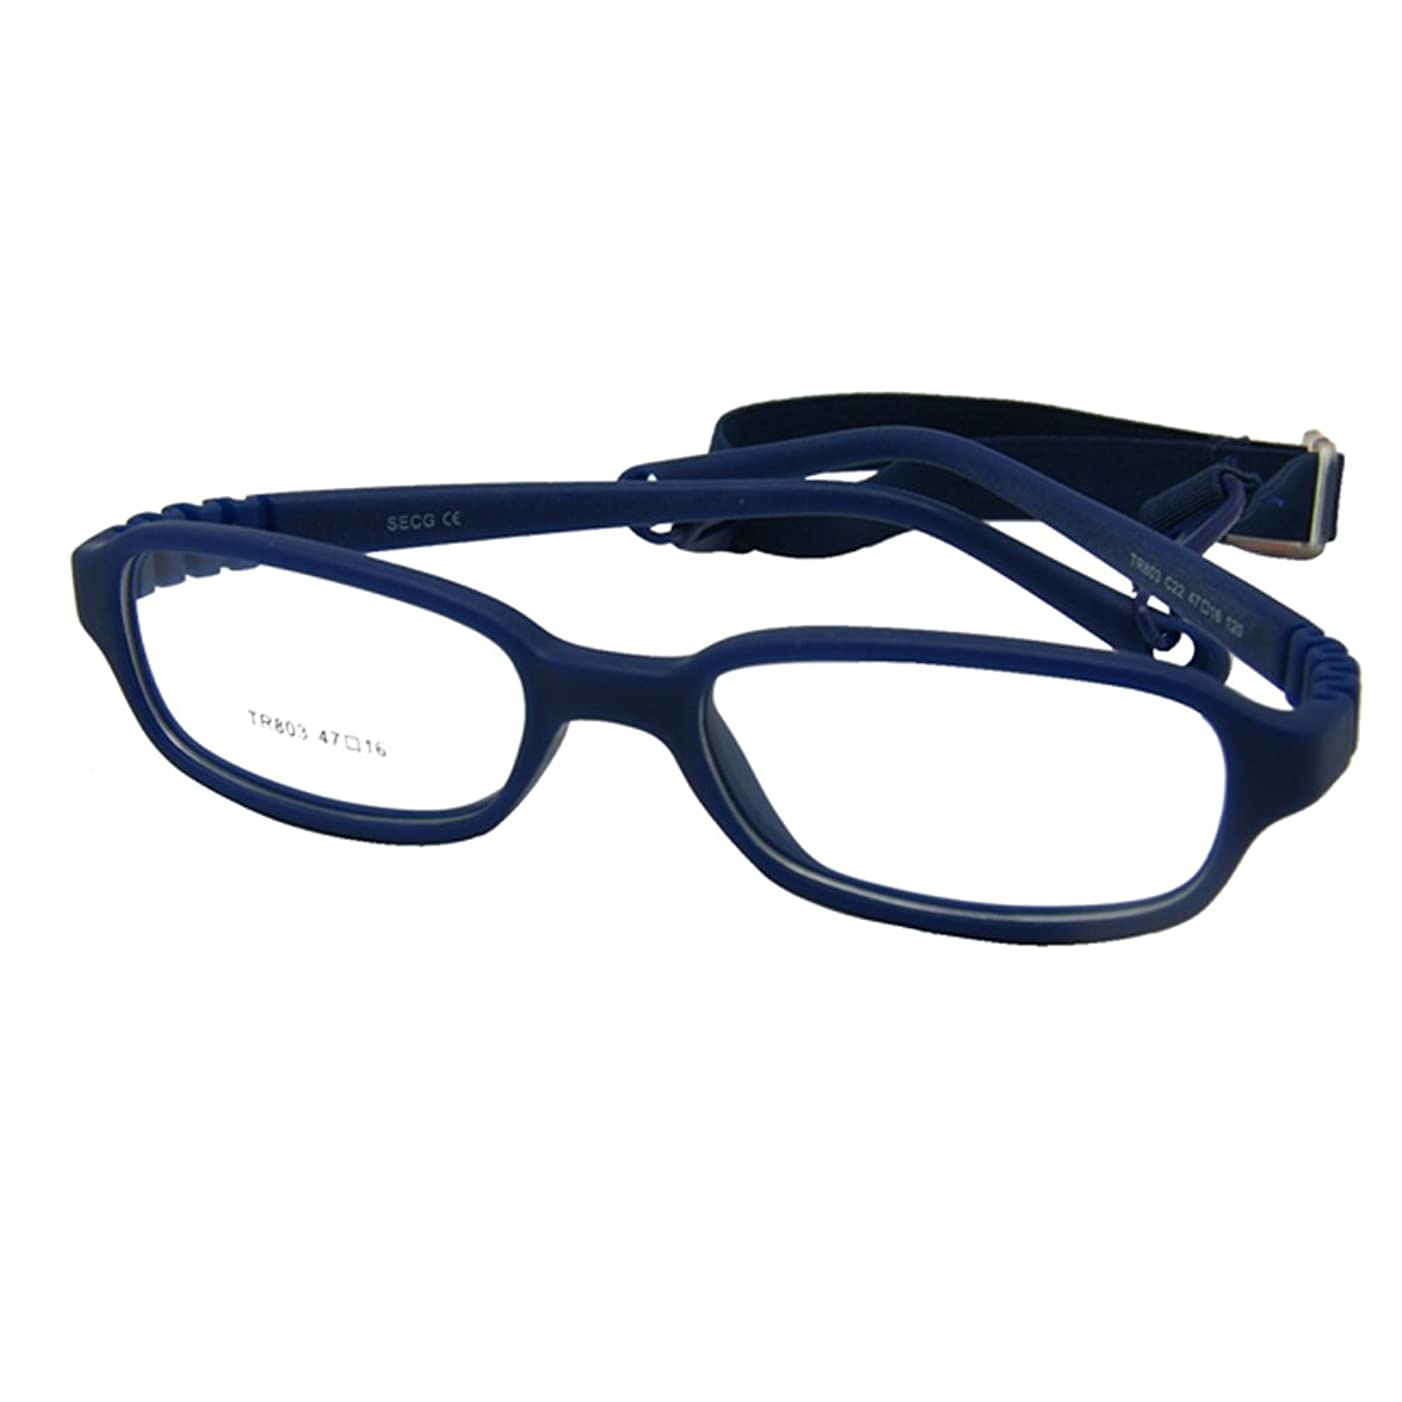 EnzoDate Kids Optical Glasses Frame Size 47-16-115 with Cord, No Screw Bendable